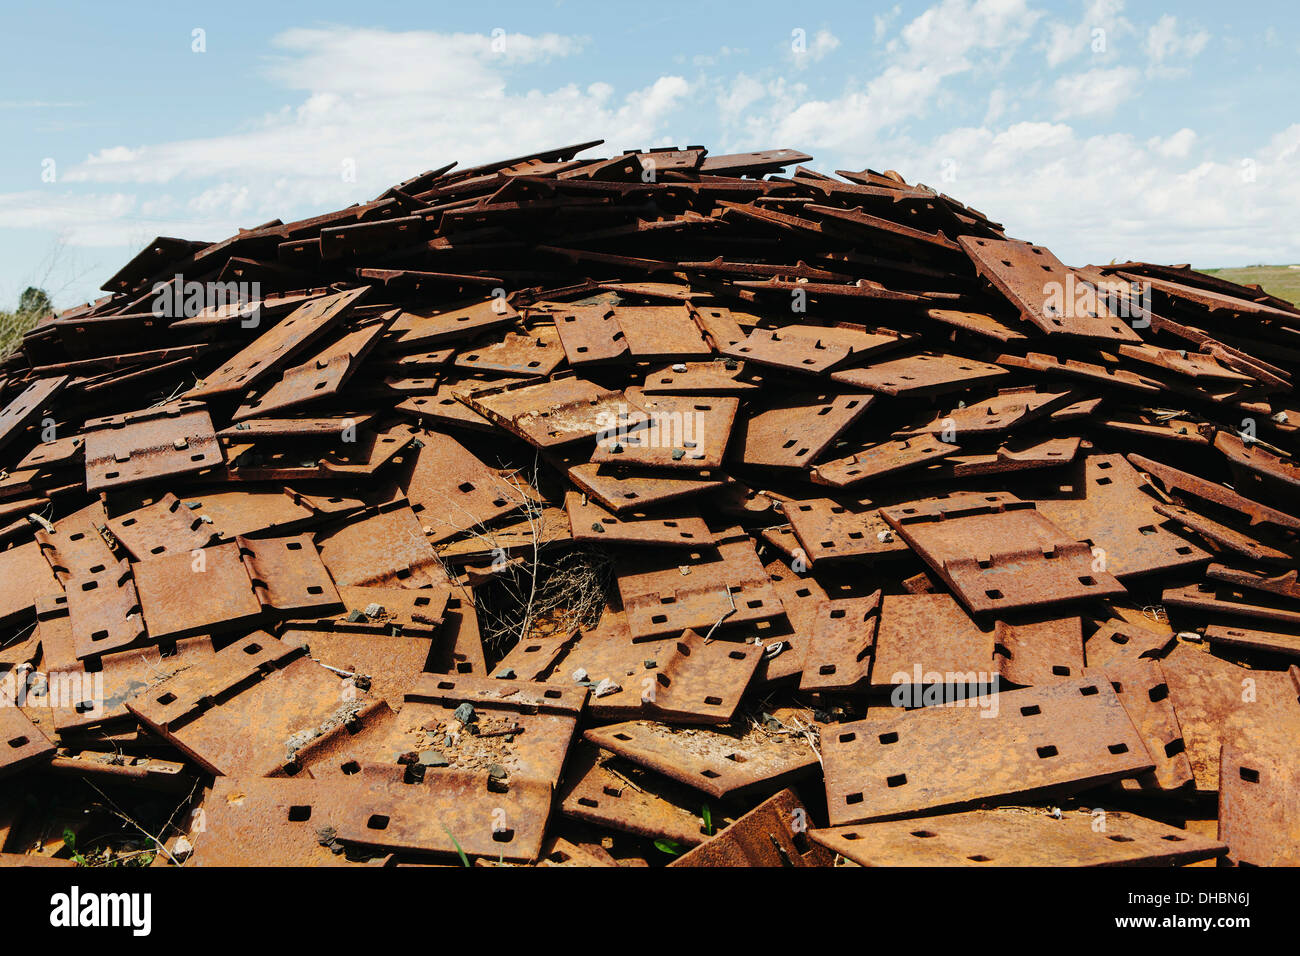 A large pile of rusty plates, used for railroad construction. Discarded or piled up for recycling. - Stock Image